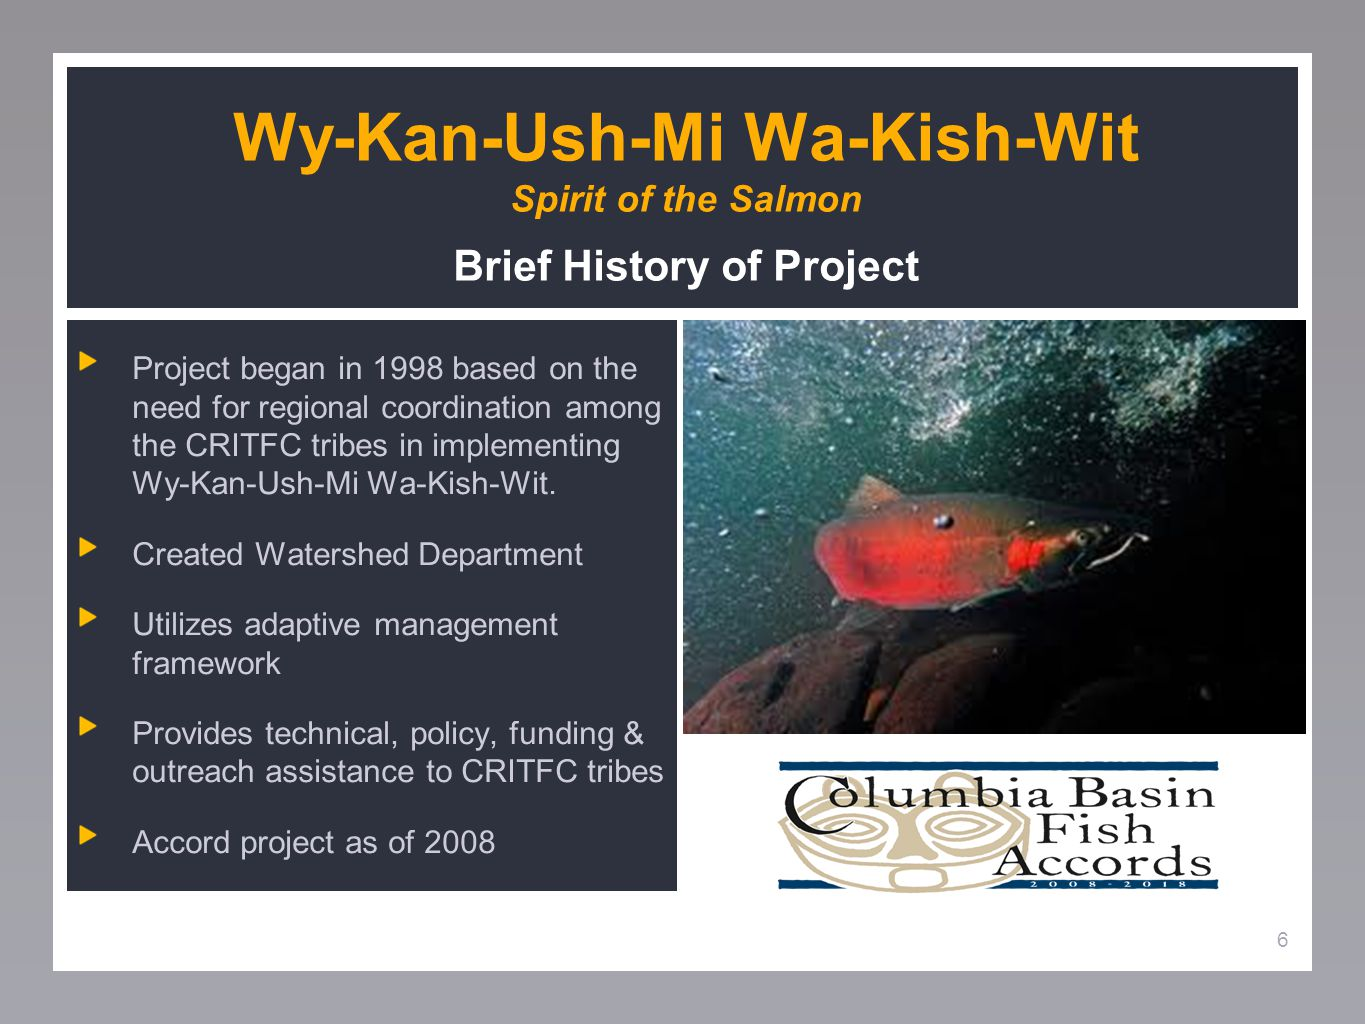 6 Wy-Kan-Ush-Mi Wa-Kish-Wit Spirit of the Salmon Brief History of Project Project began in 1998 based on the need for regional coordination among the CRITFC tribes in implementing Wy-Kan-Ush-Mi Wa-Kish-Wit.